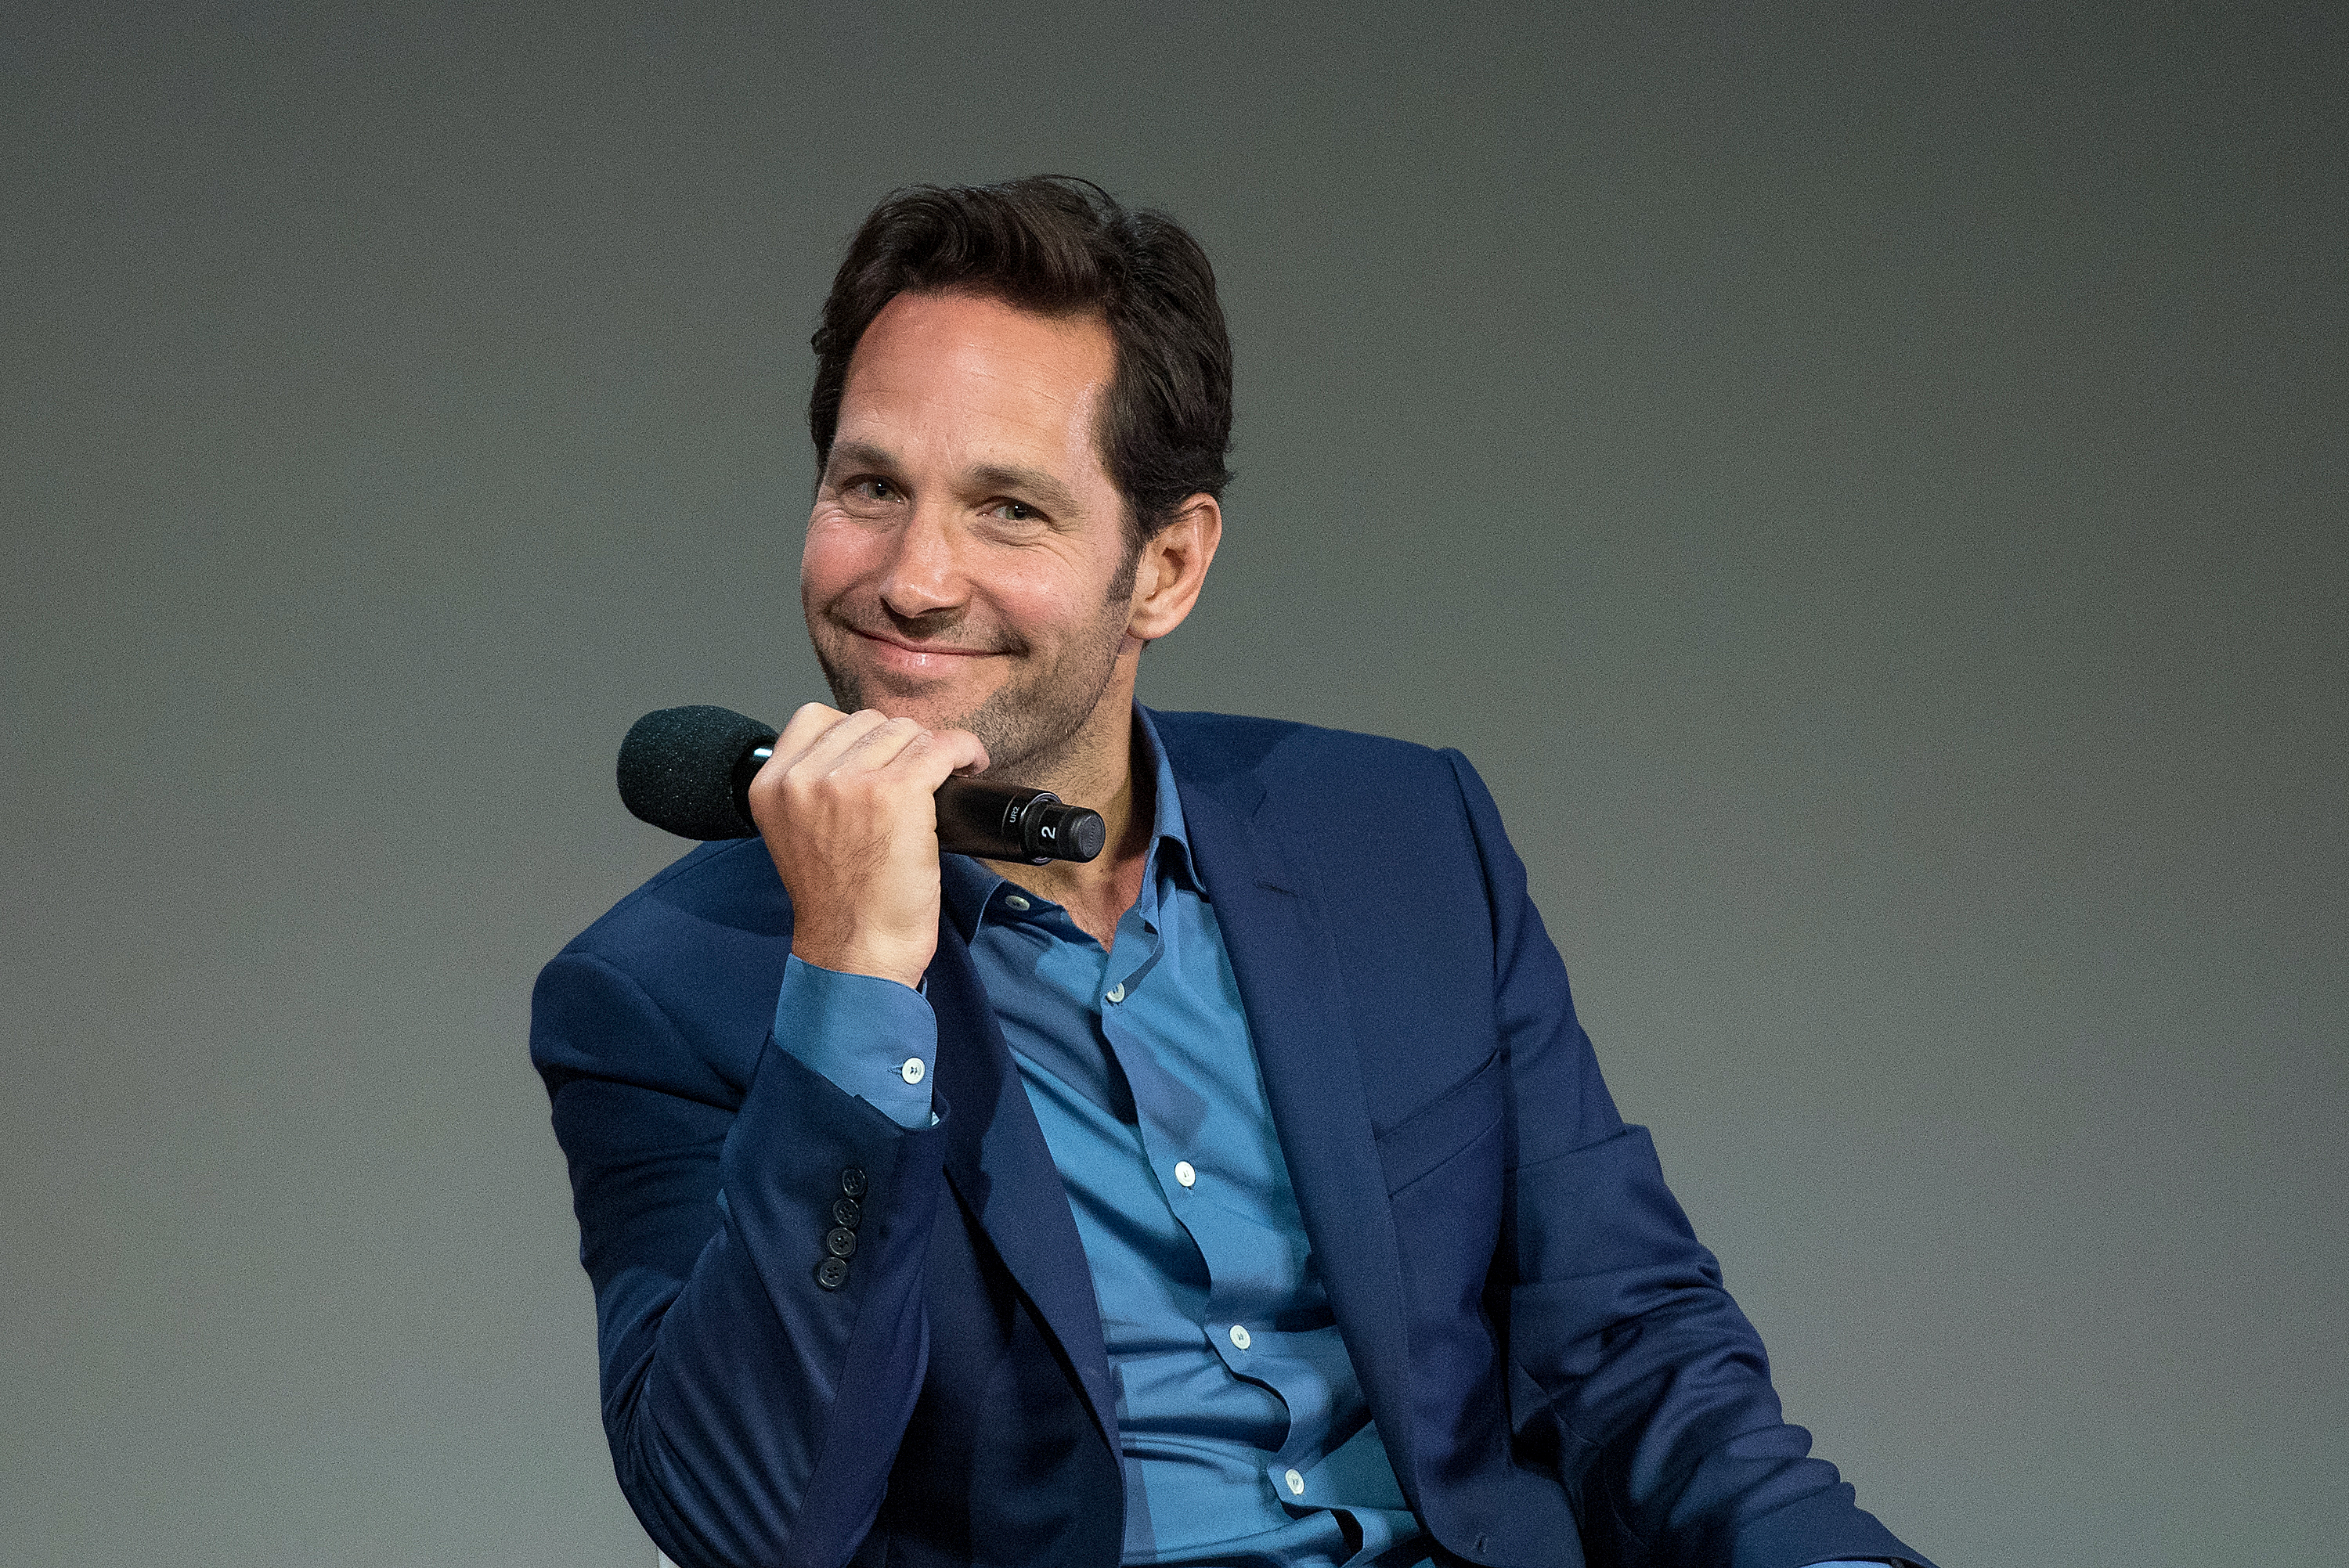 A short and sweet goodbye to HelloGiggles, and a bonus Paul Rudd picture for your trouble